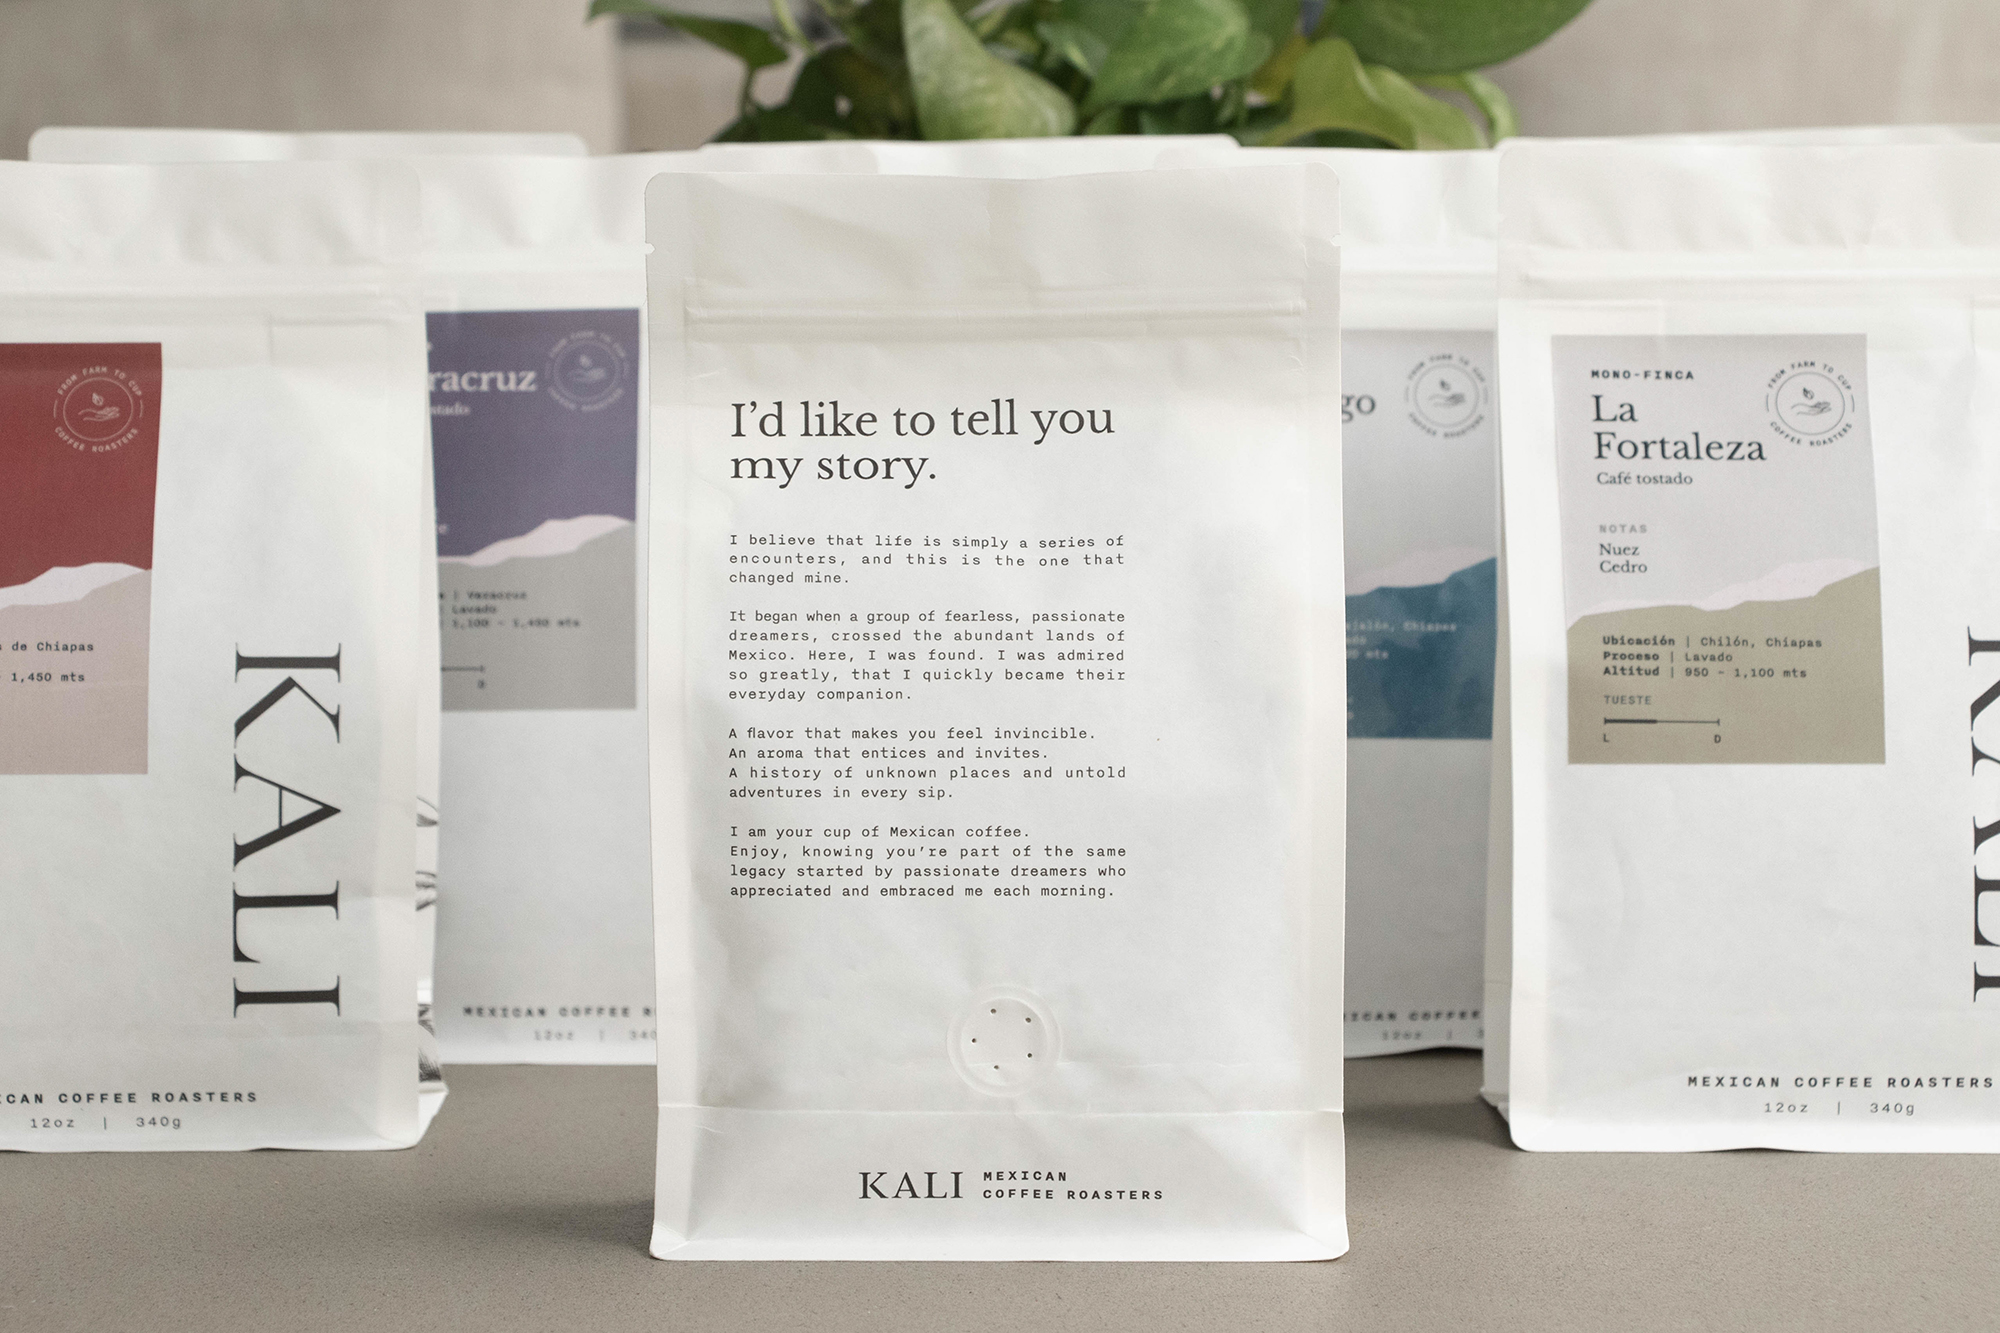 Kali Coffee Roasters In House Creative Team Launches Their New Coffee Bags World Brand Design